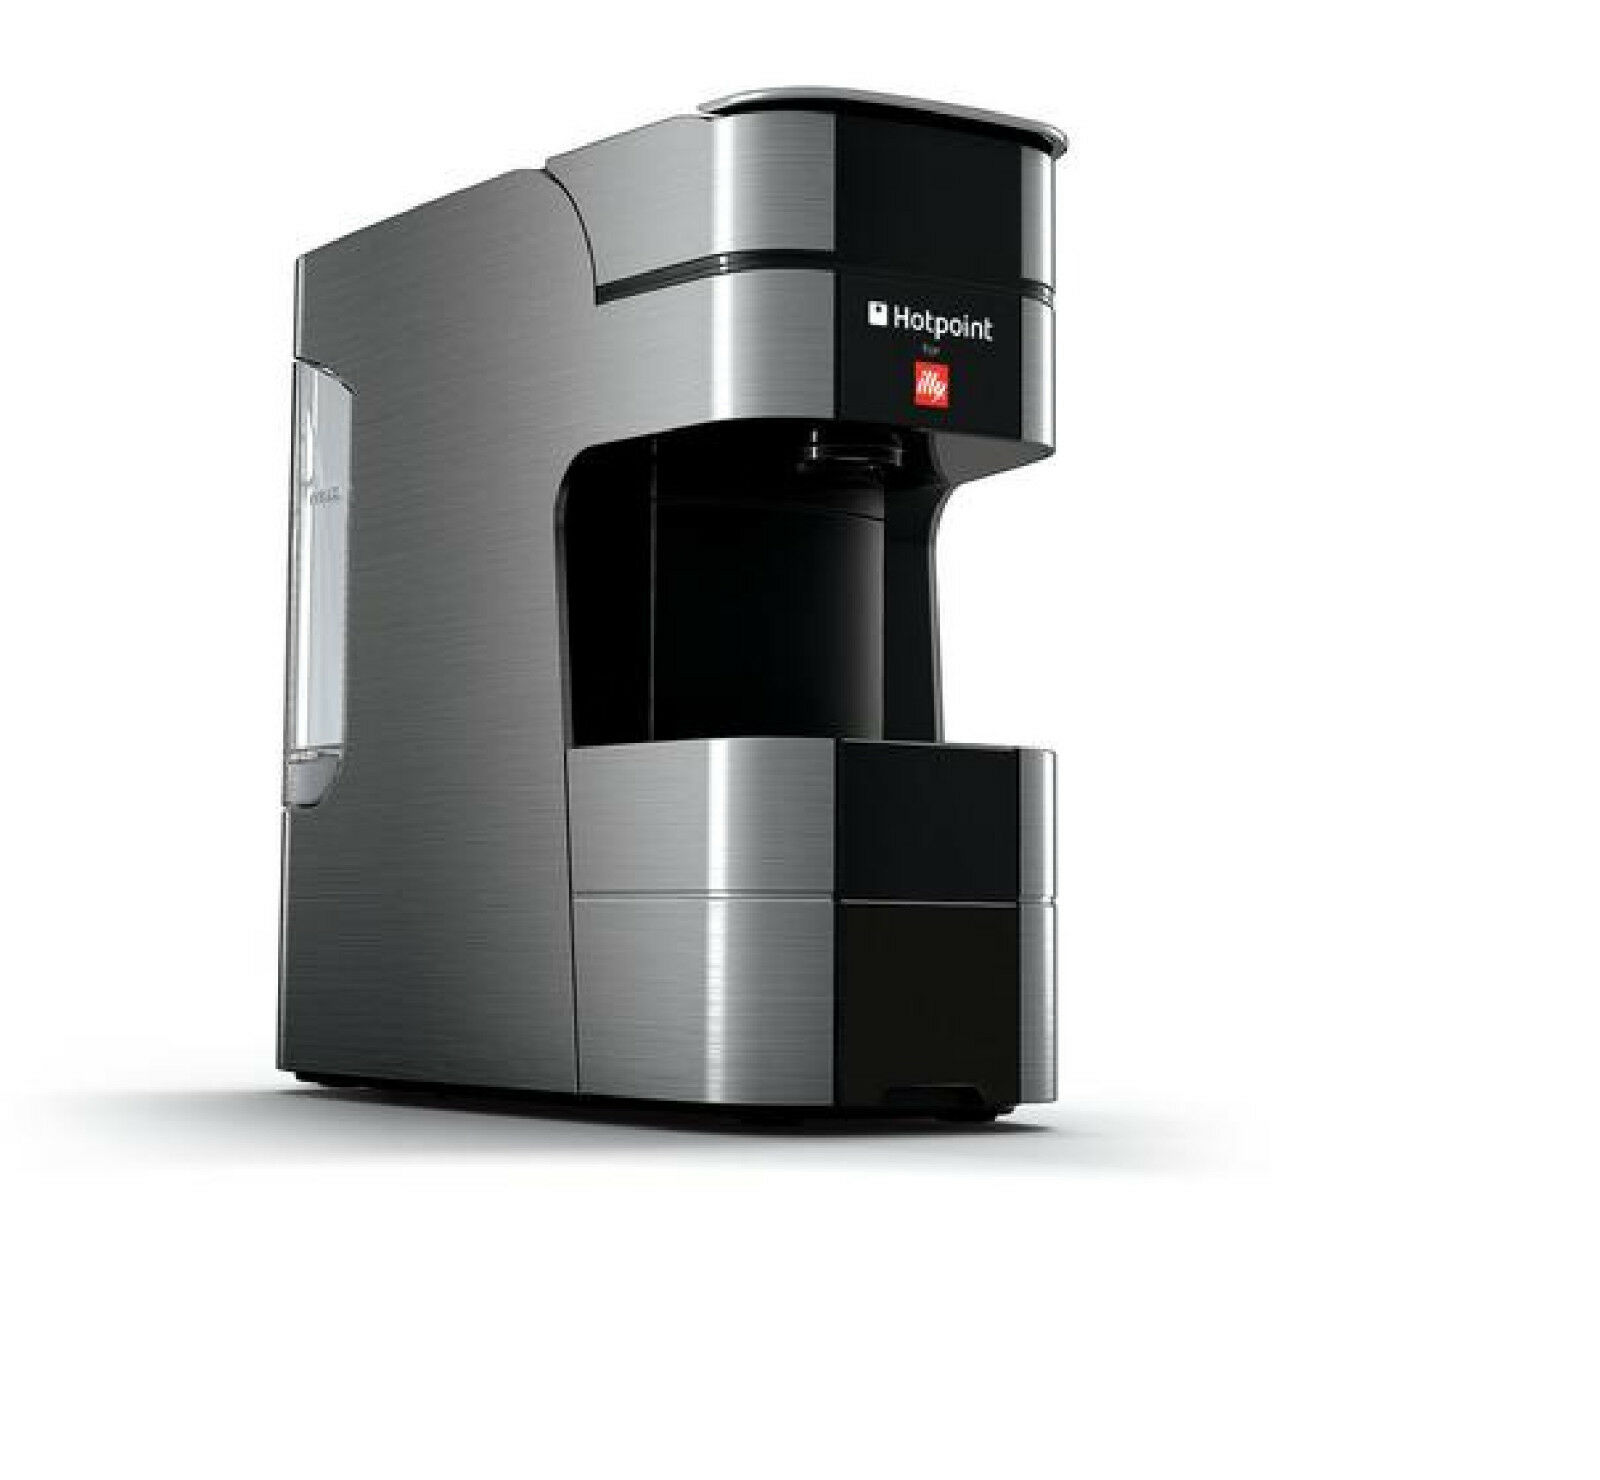 Hotpoint For Illy Cmhpcgx0 Compact Espresso Machine 240w Silver